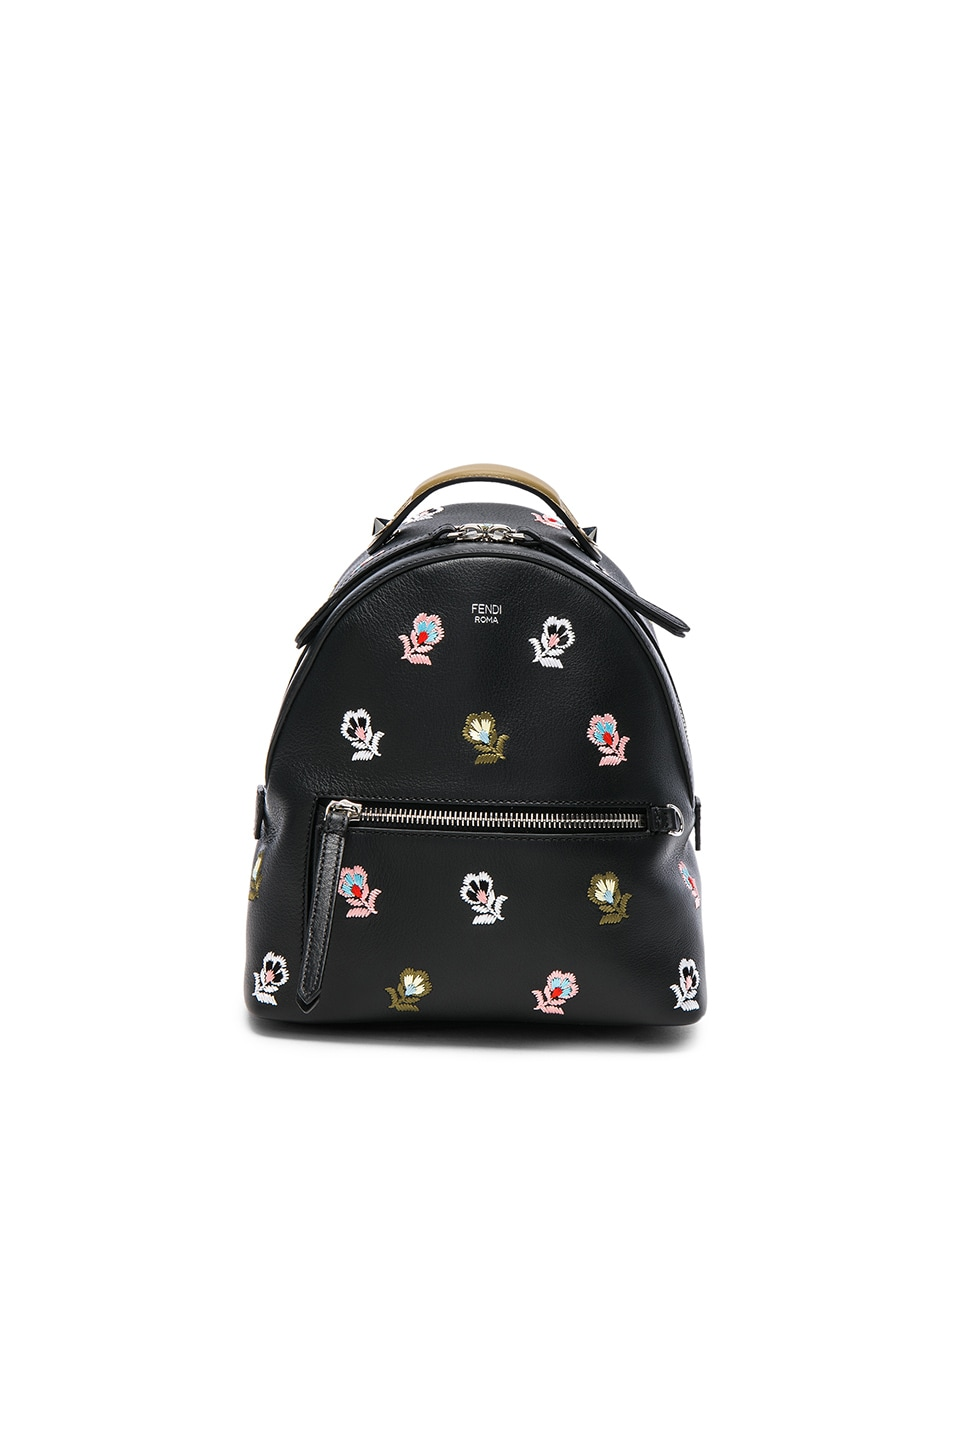 Image 1 of Fendi Mini Zaino Backpack in Black & Multicolor